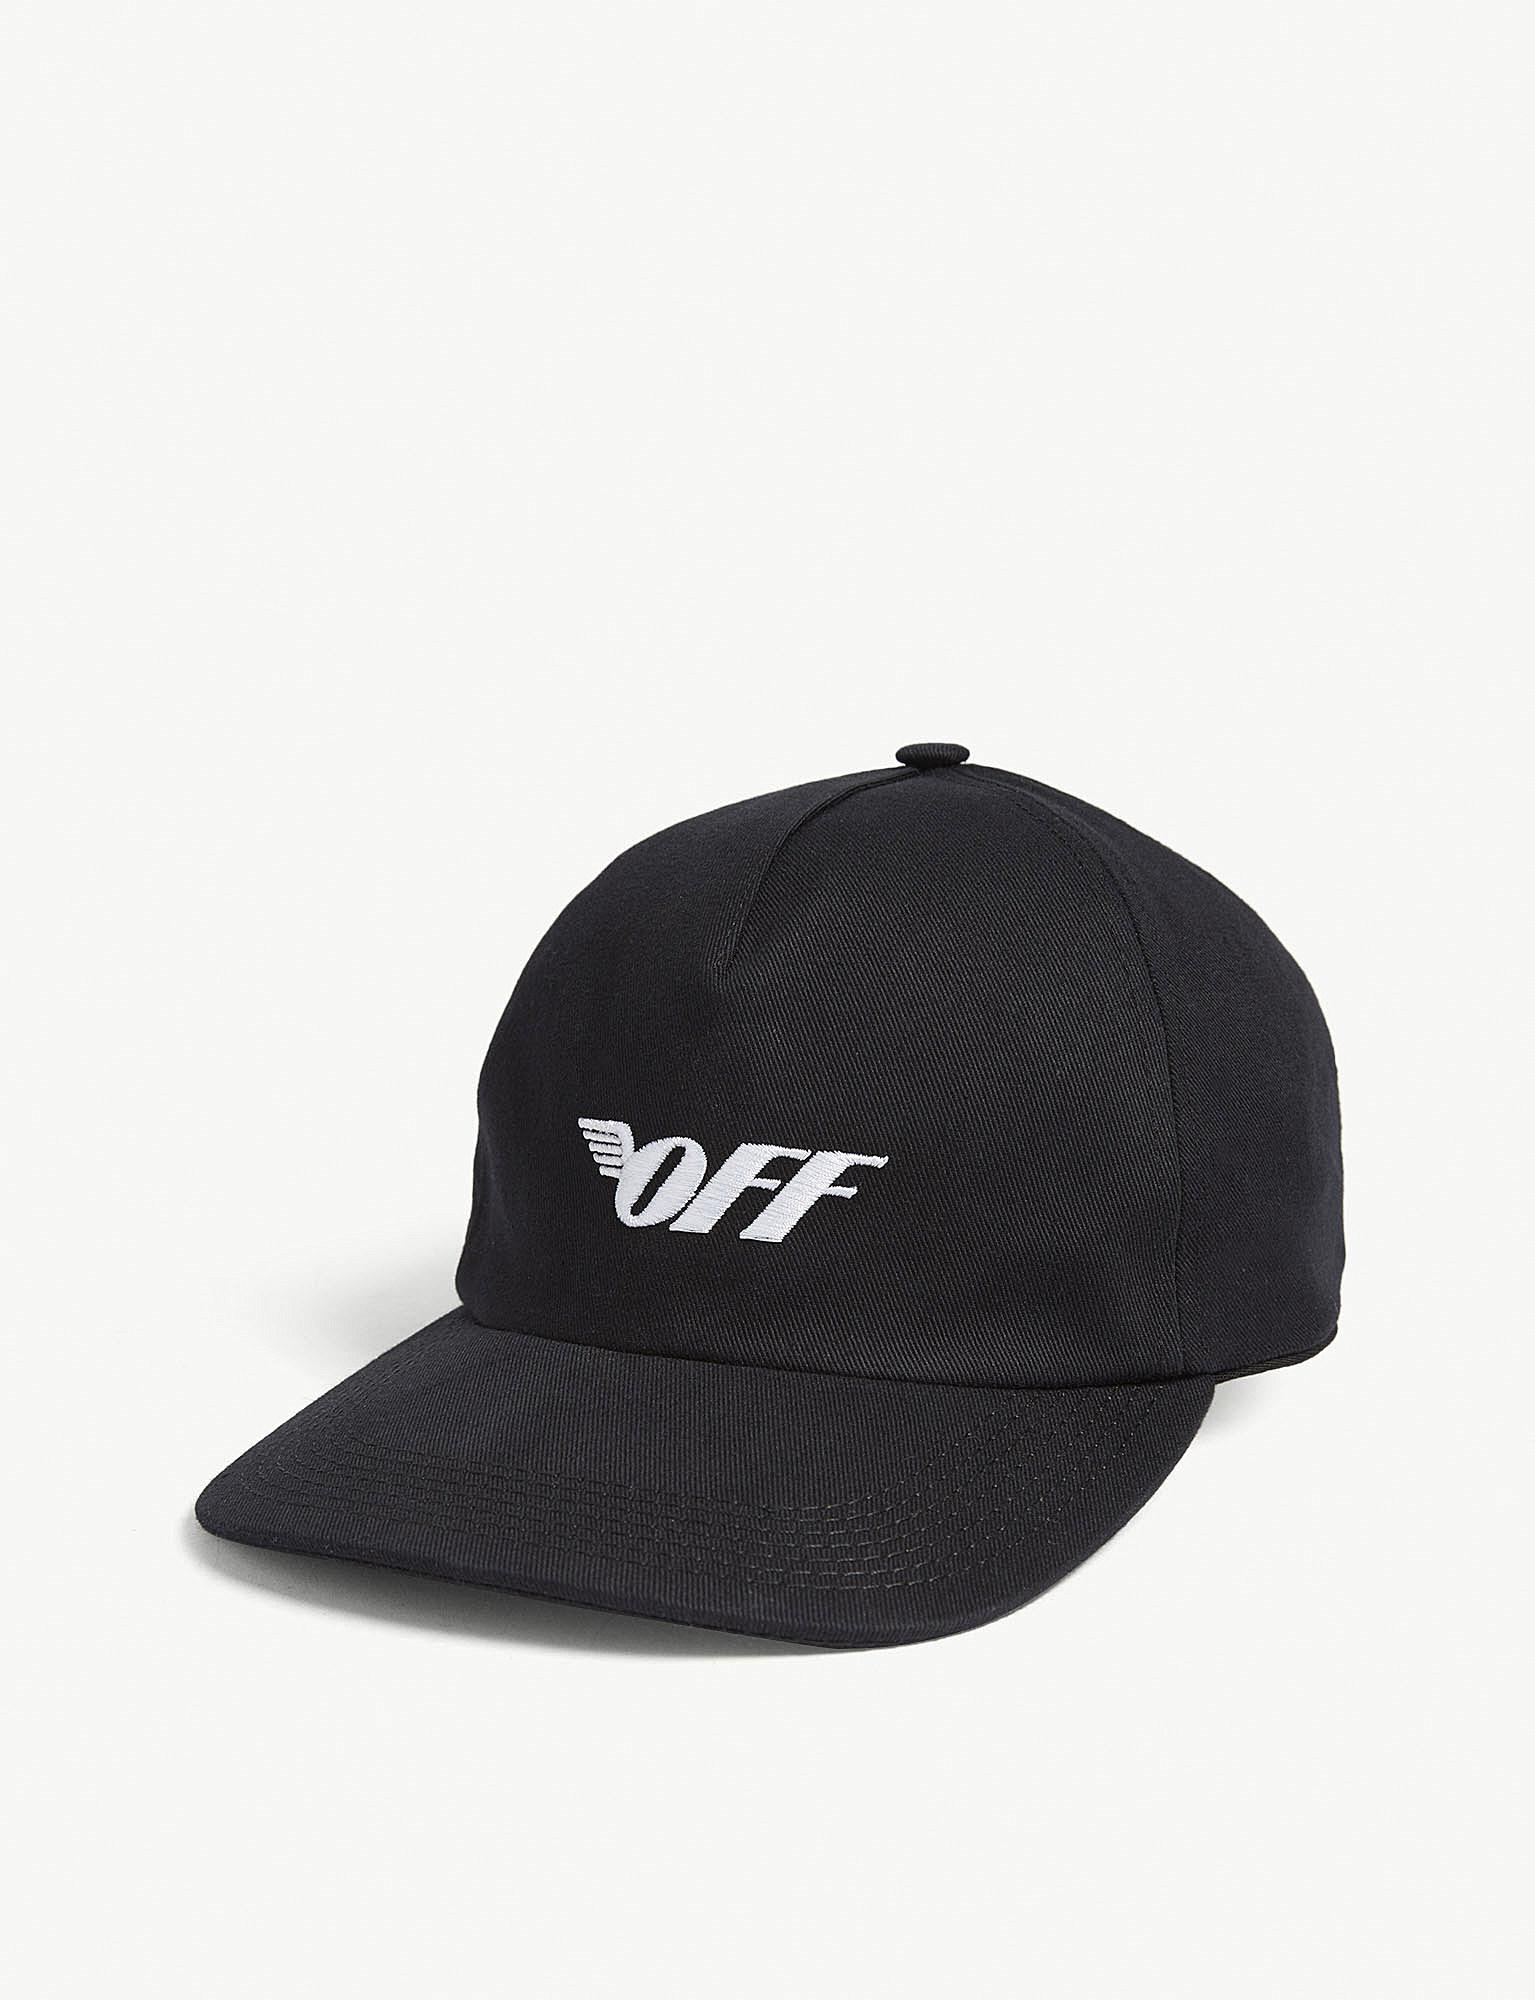 64f931a1d19 Off-White c o Virgil Abloh. Women s Black Wings Logo Cotton Baseball Cap